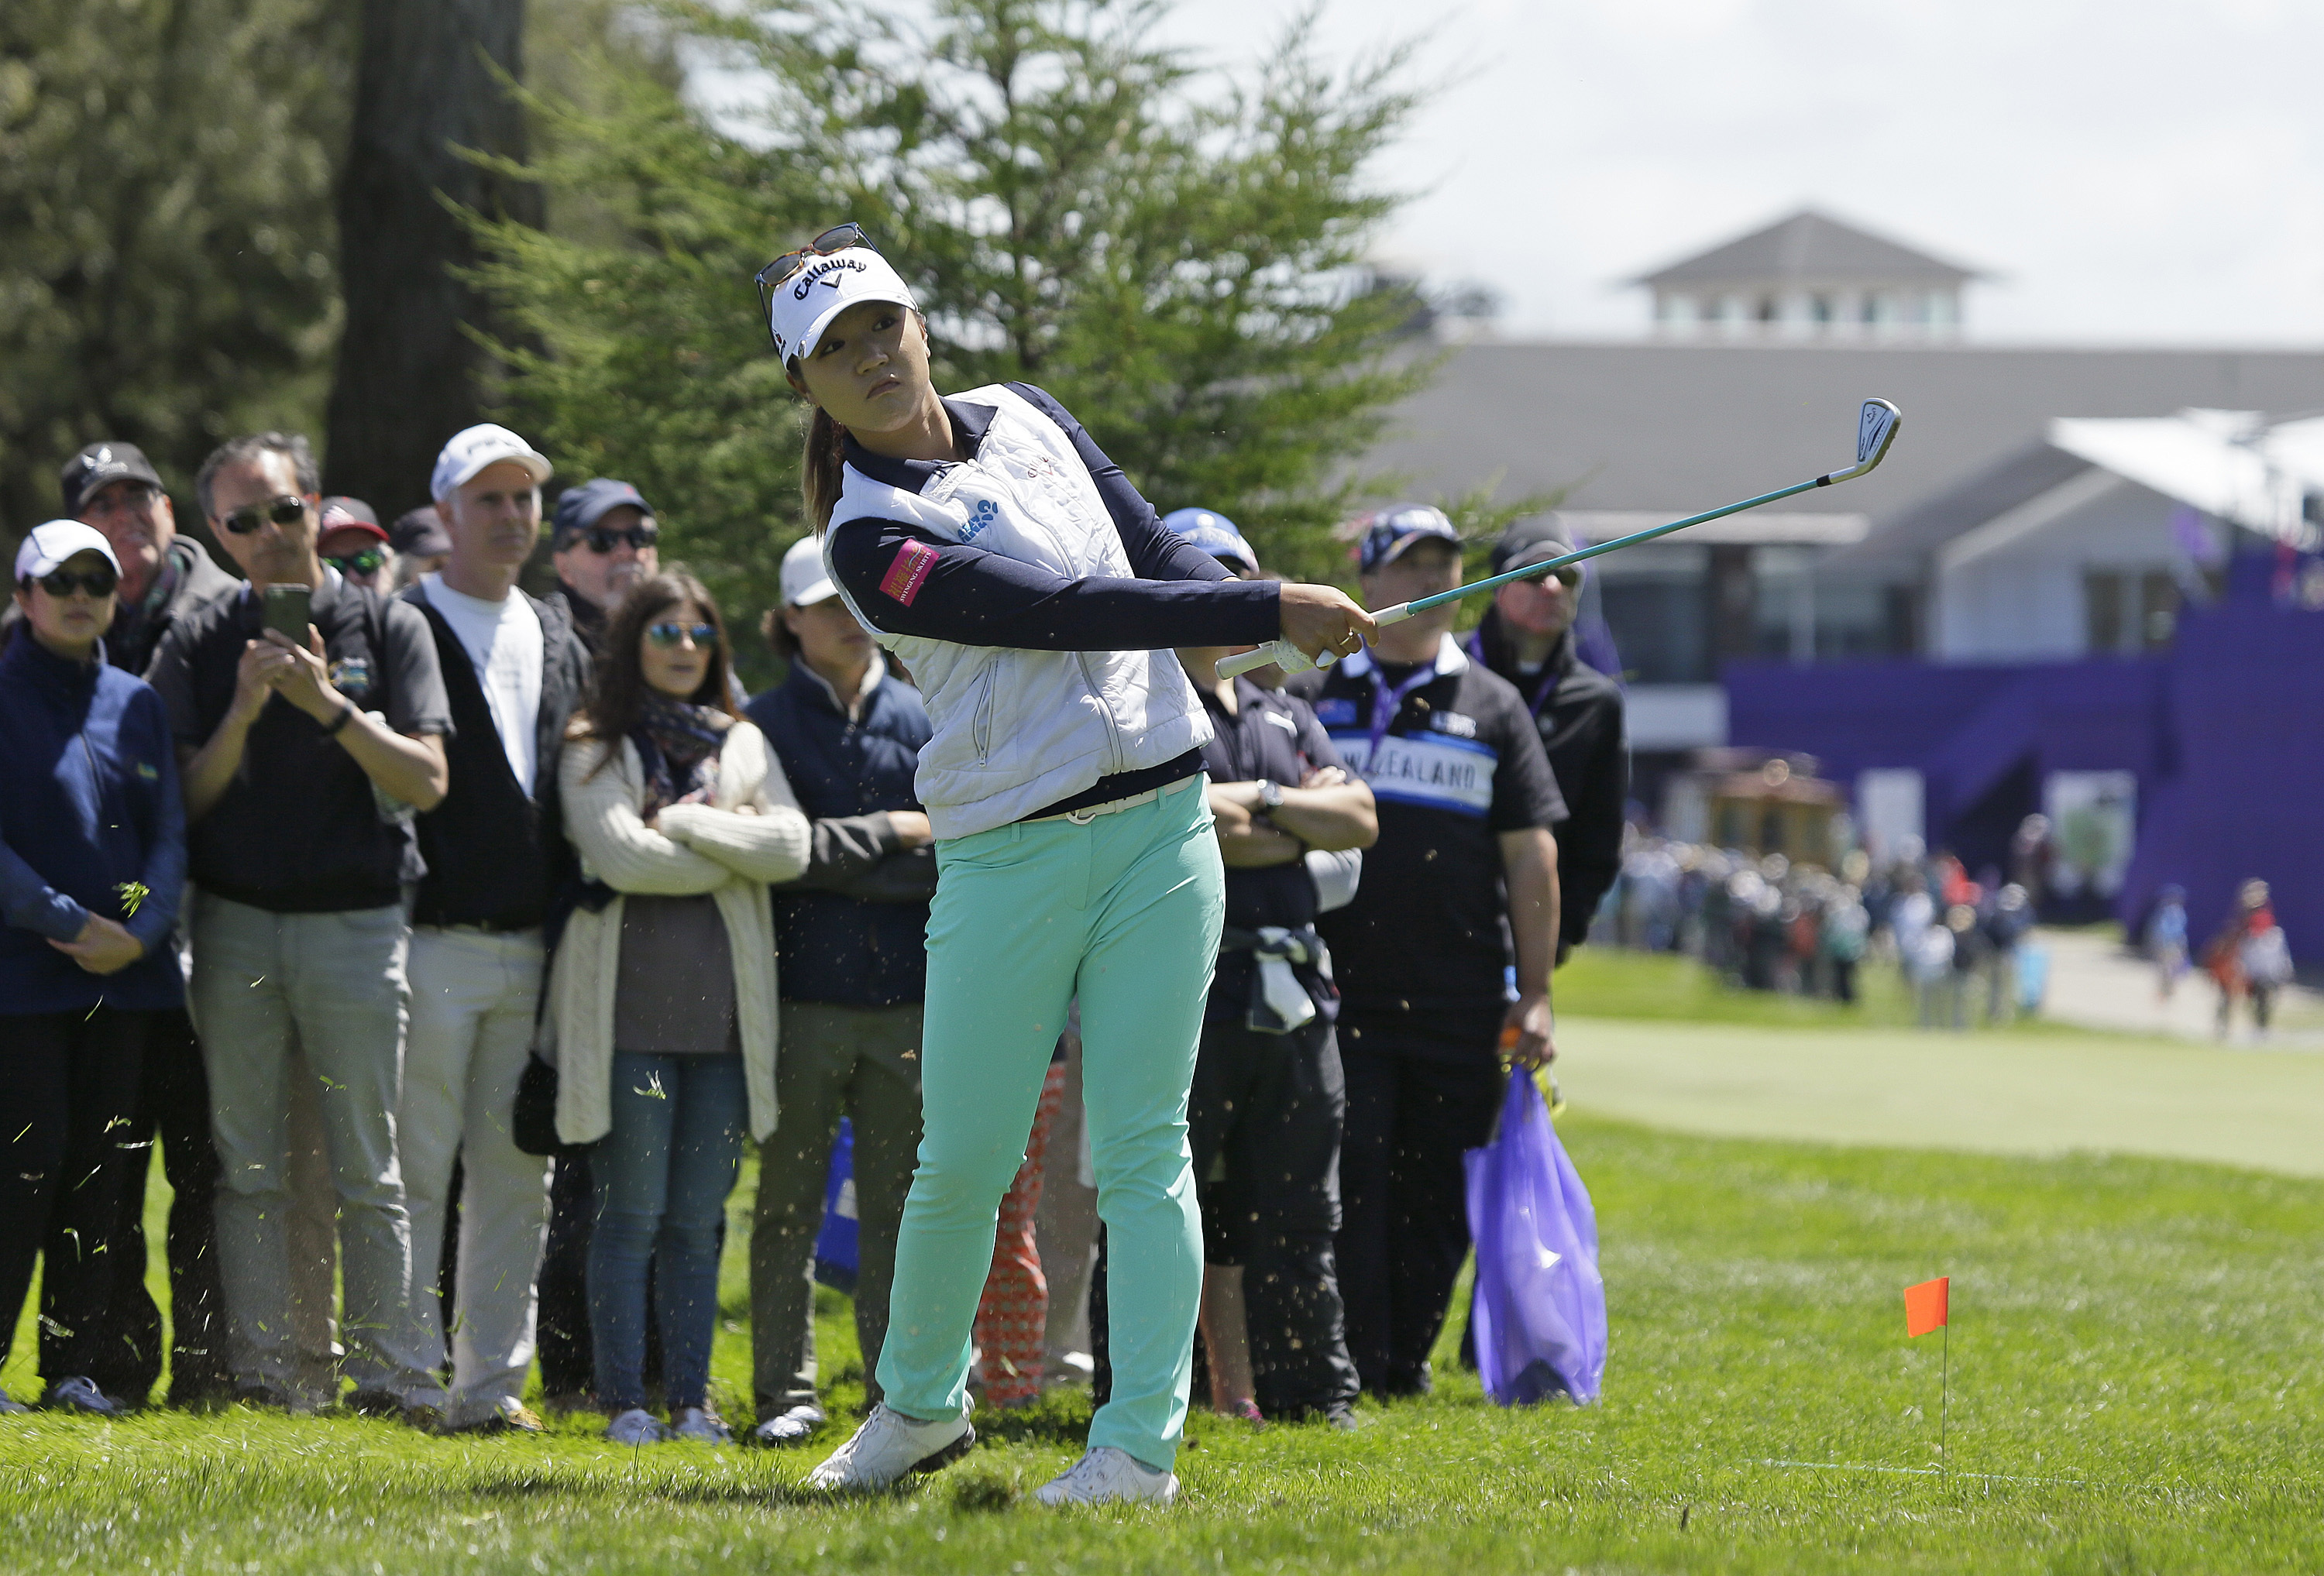 Lydia Ko, of New Zealand, hits from off the first fairway of the Lake Merced Golf Club during the third round of the Swinging Skirts LPGA Classic golf tournament Saturday, April 23, 2016, in Daly City, Calif. (AP Photo/Eric Risberg)